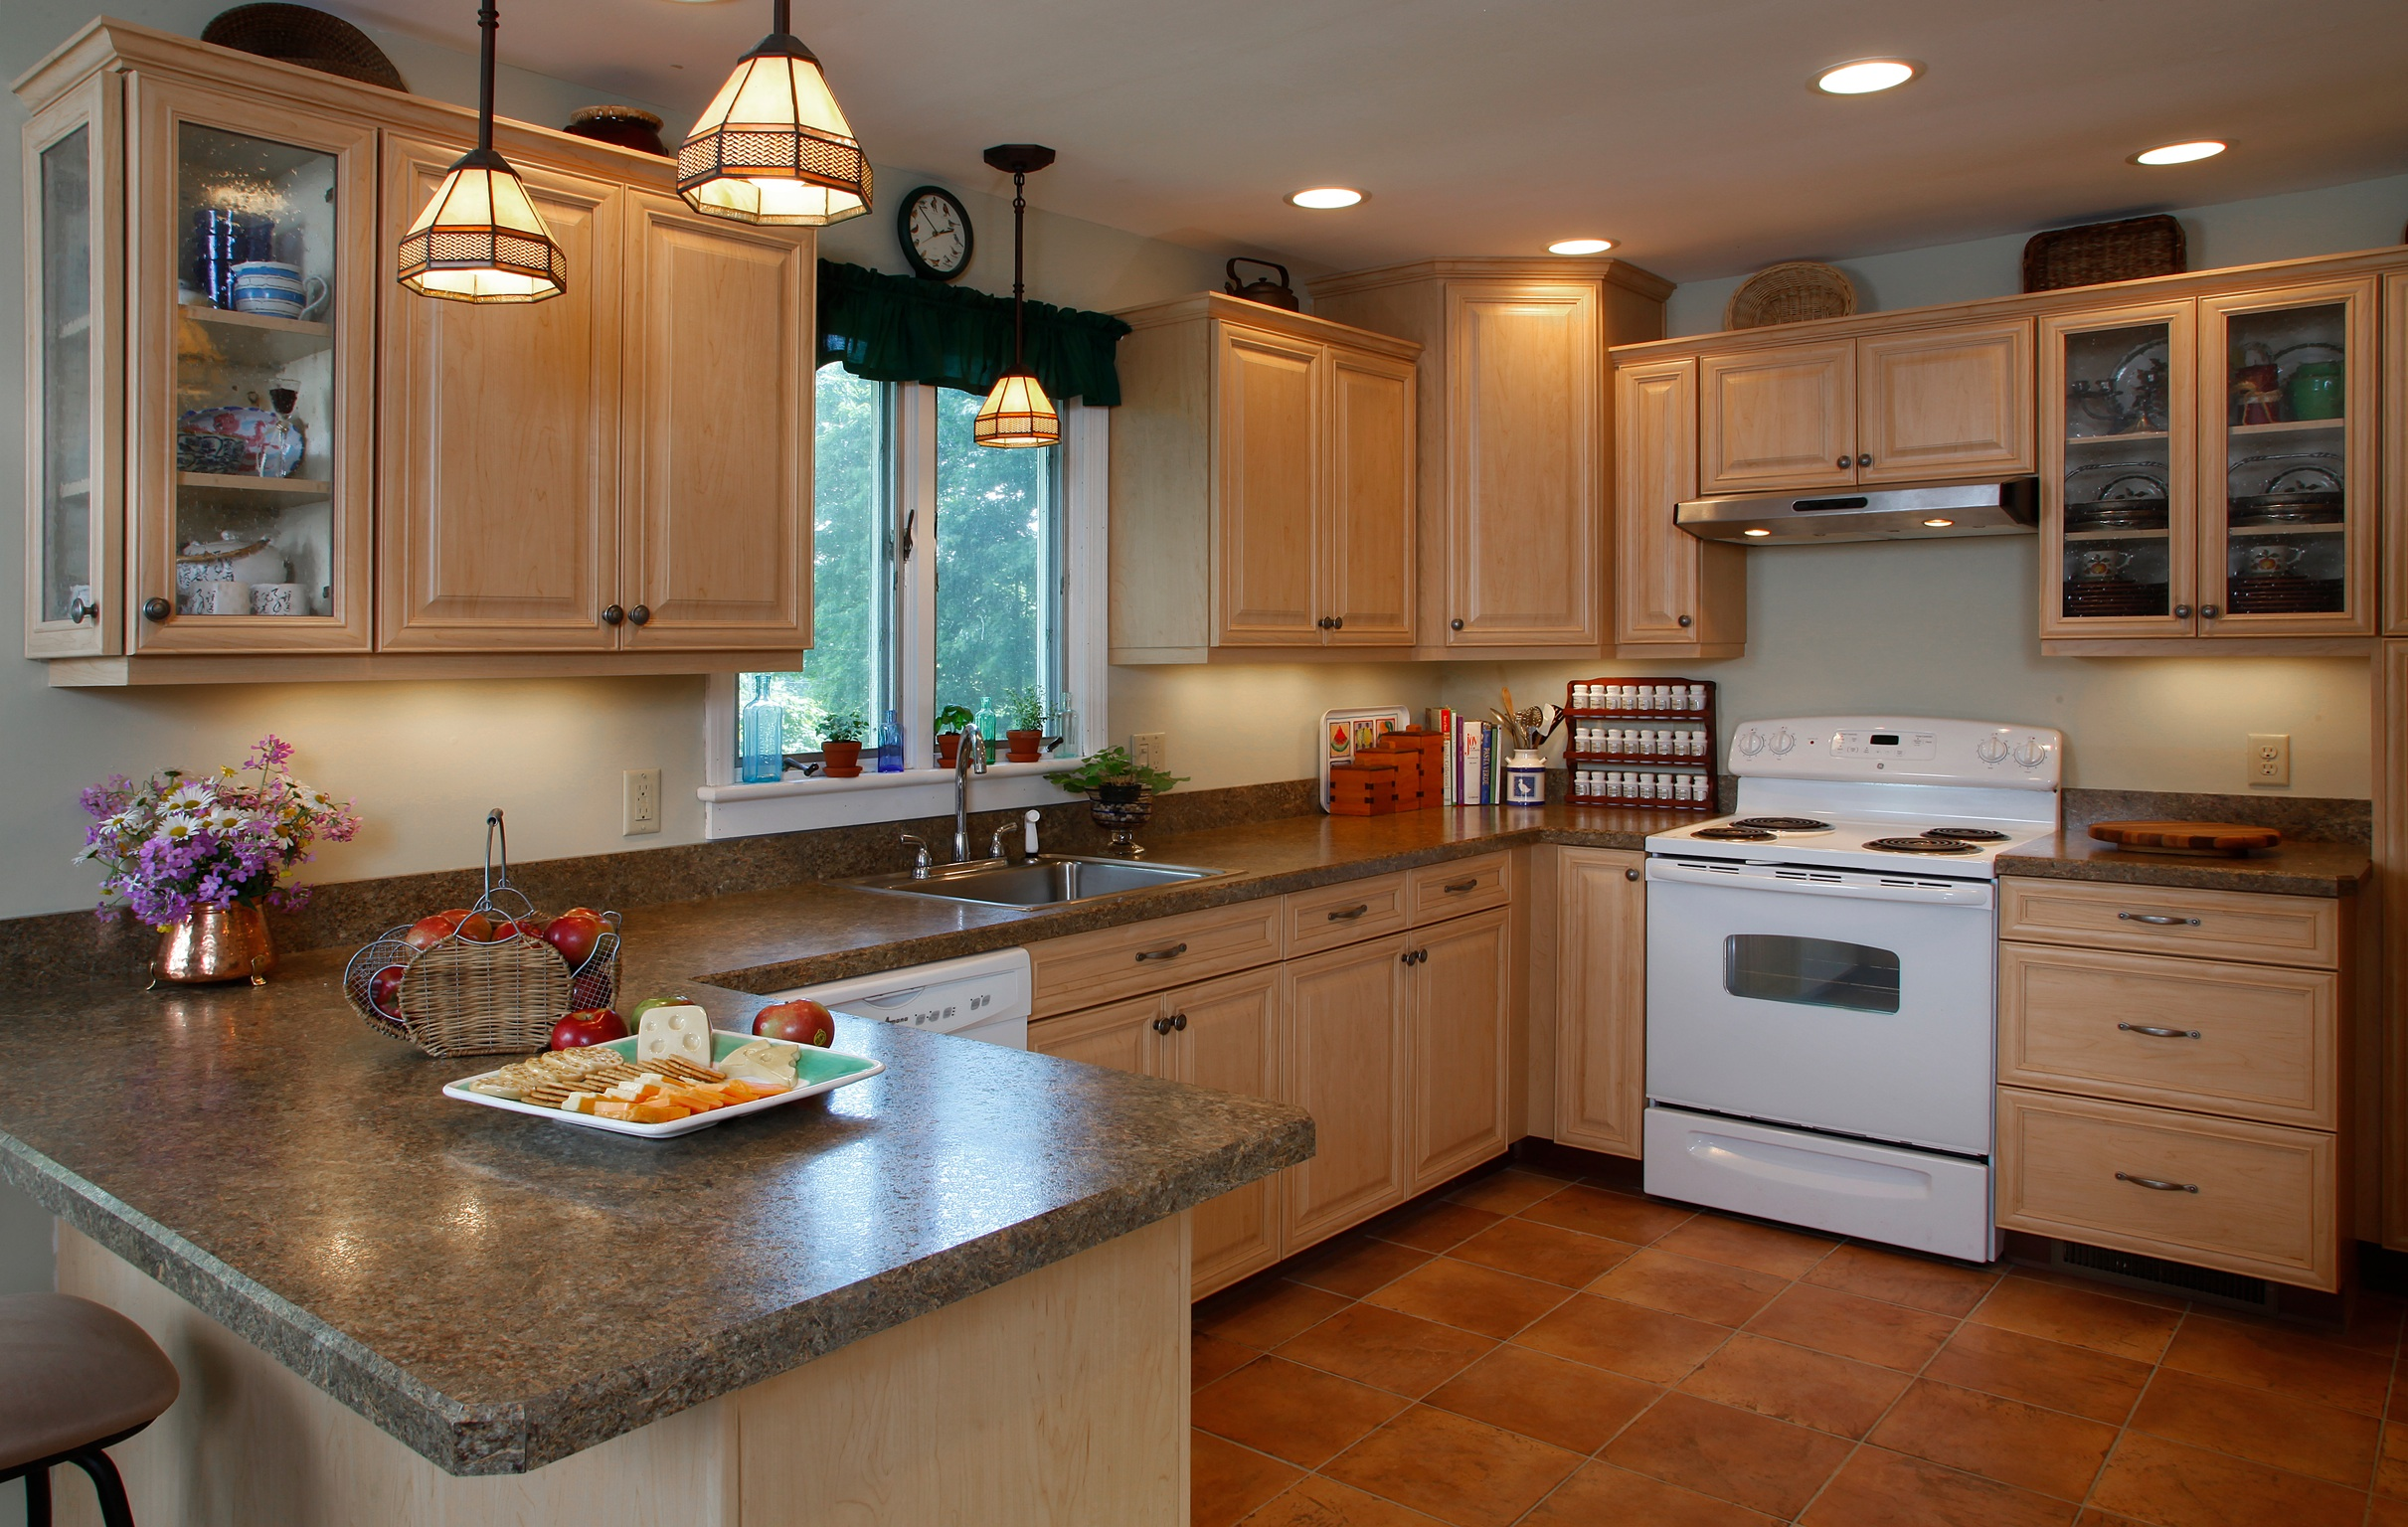 The pros and cons of the 4 inch backsplash for 3 4 inch granite countertops